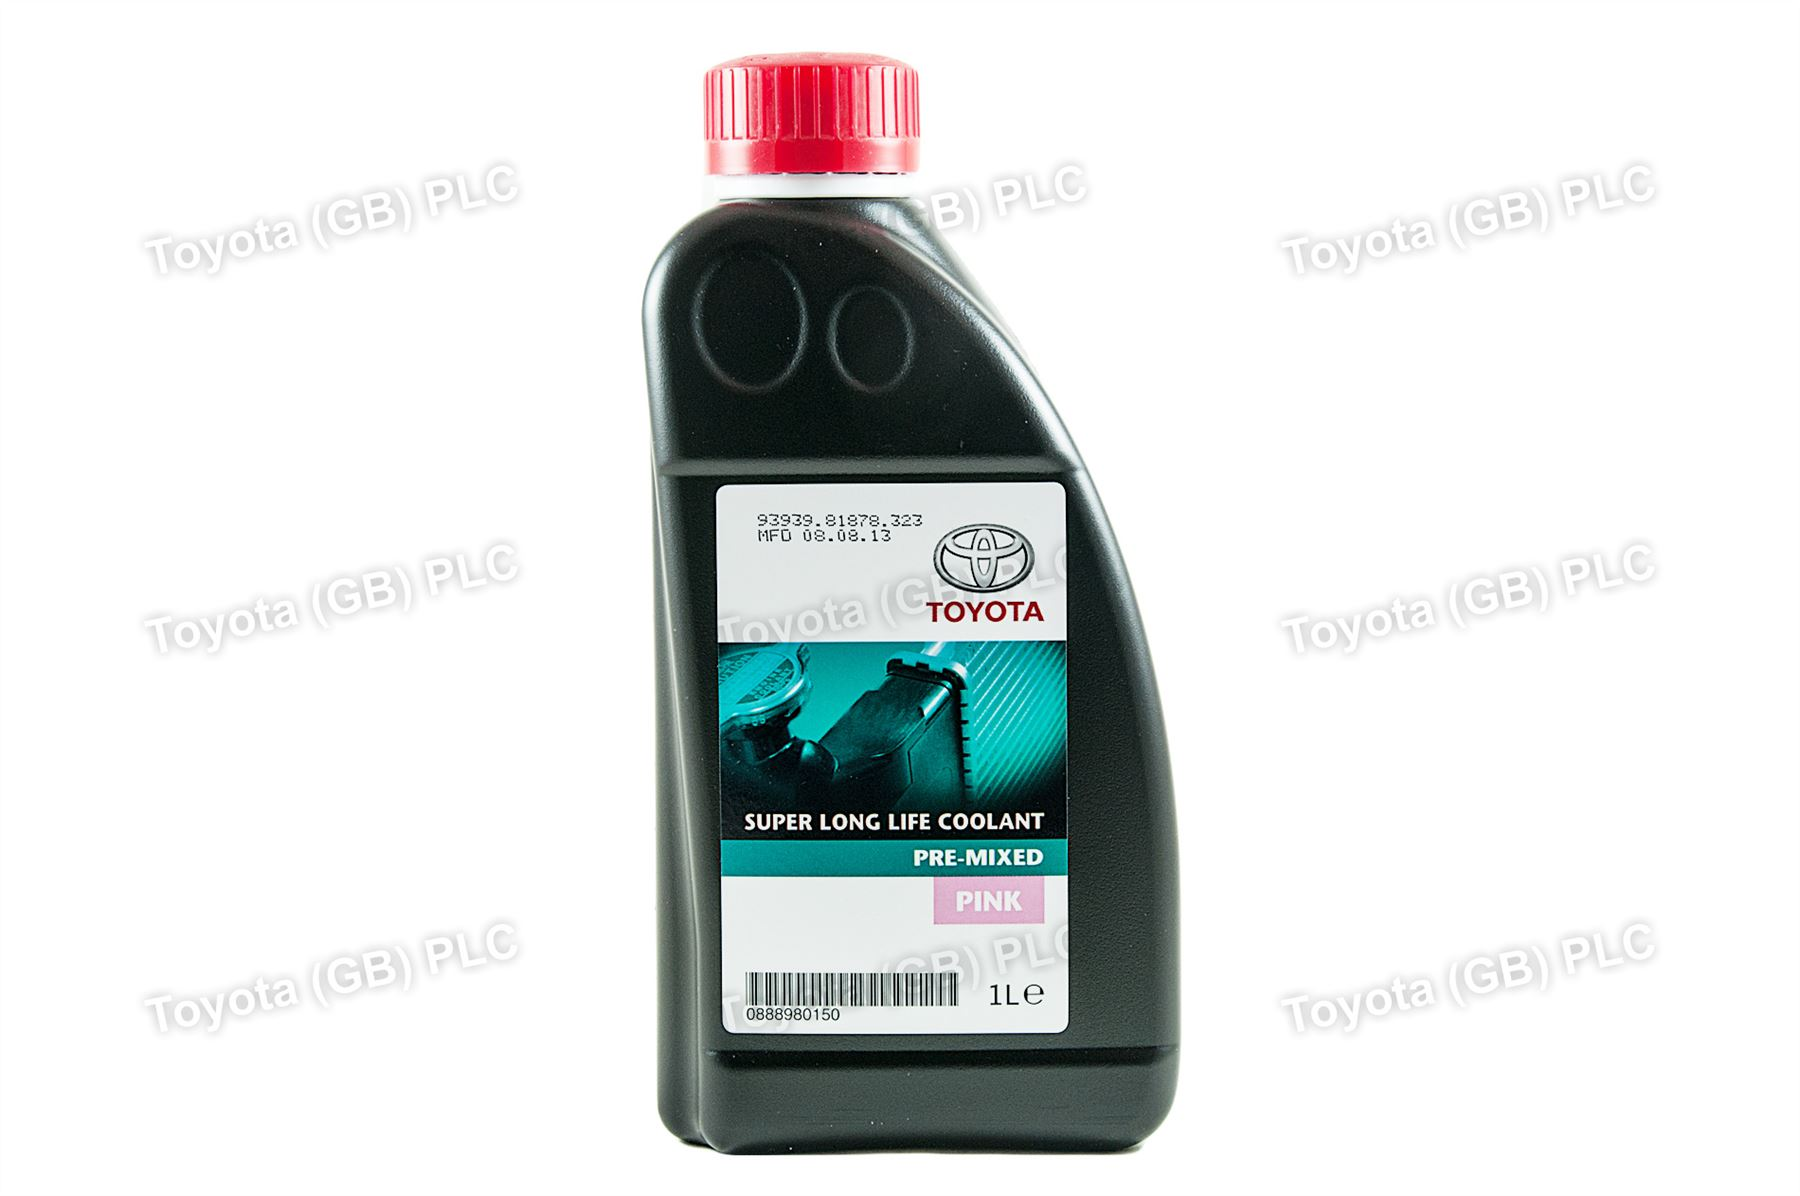 Genuine Toyota Super Long Life Coolant Pink 1 Litre Pre